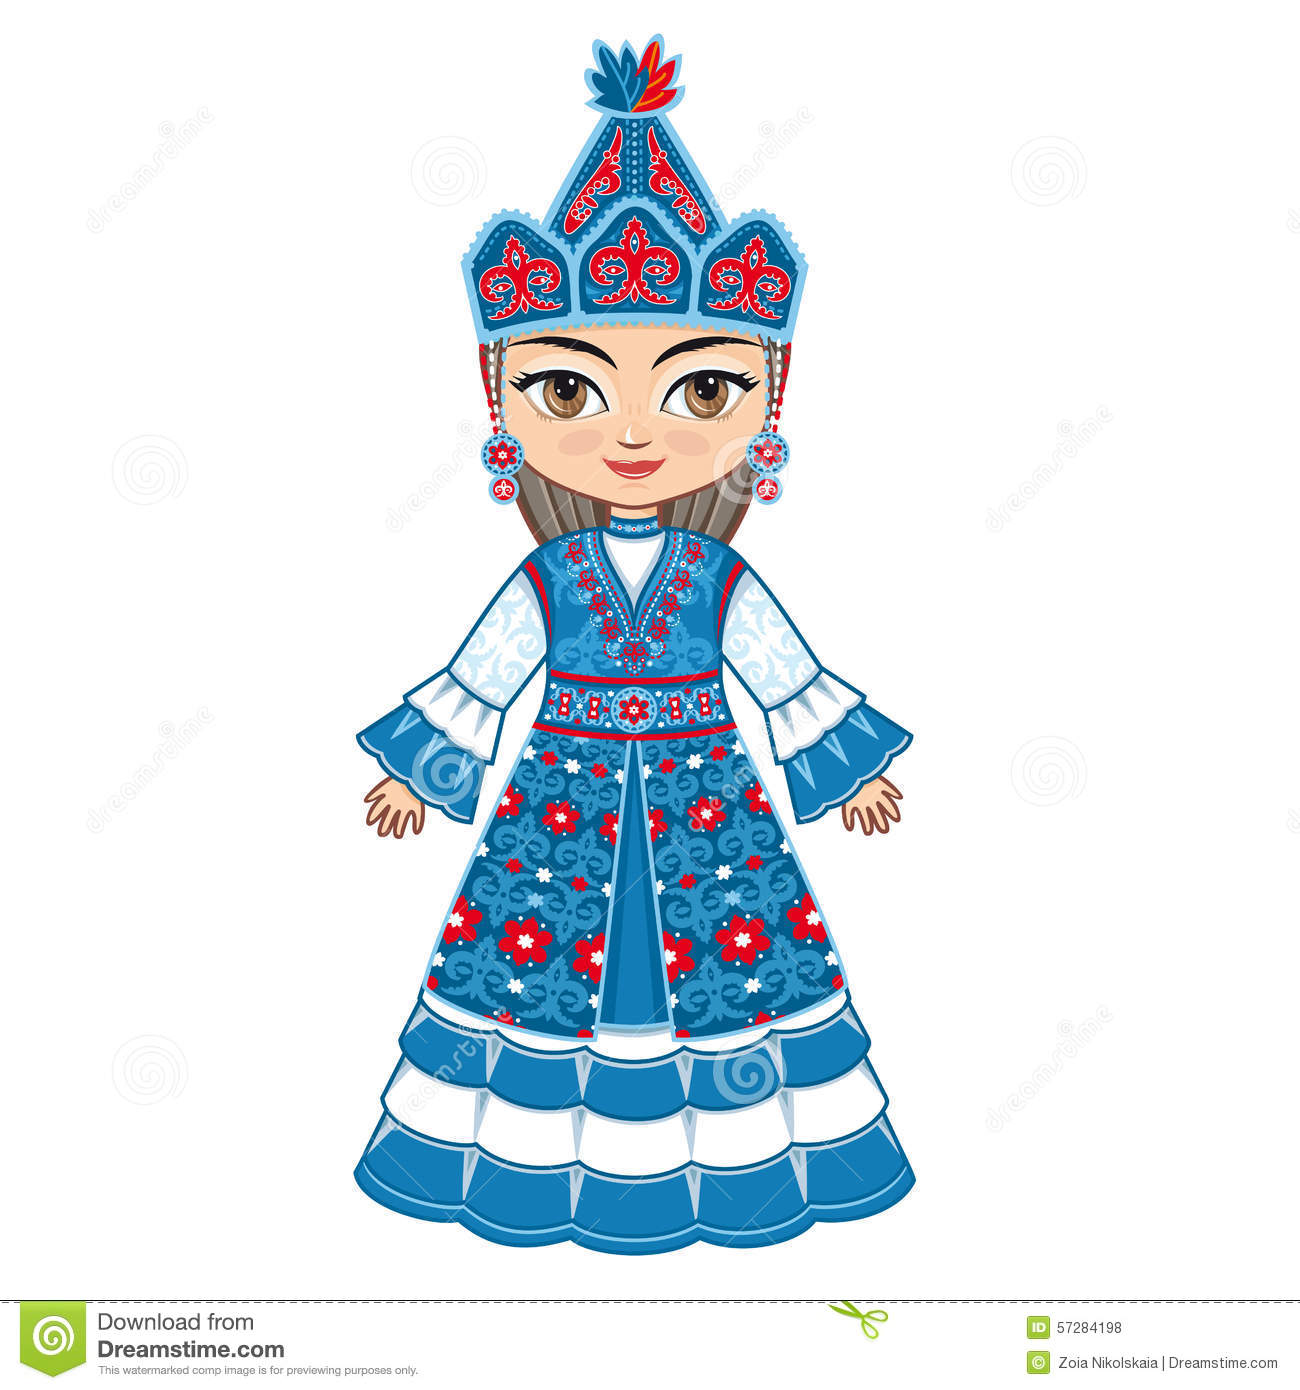 The Girl In Kyrgyz Dress. Historical Clothes. Stock Illustration ...